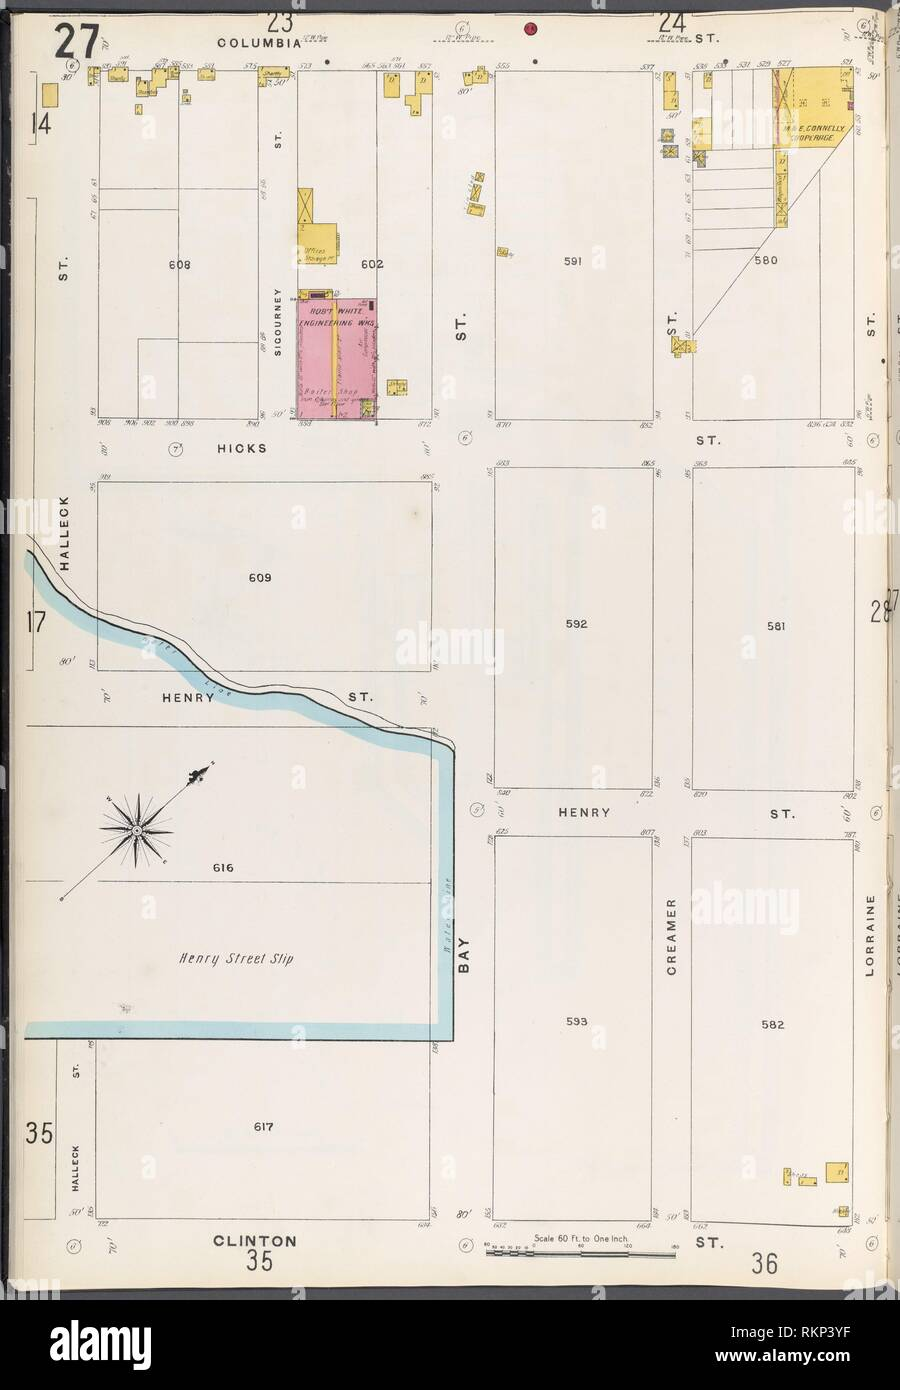 Brooklyn Plate No. 27 [Map bounded by Halleck St., Columbia ... on map of tillson ny, map of paul smiths ny, map of jackson ny, map of appleton ny, map of north river ny, map of south otselic ny, map of strykersville ny, map of nelson ny, map of le roy ny, map of south colton ny, map of tioga ny, map of kingsbury ny, map of kent ny, map of winthrop ny, map of glenfield ny, map of dickinson ny, map of afton ny, map of pine island ny, map of vernon center ny, map of scipio center ny,